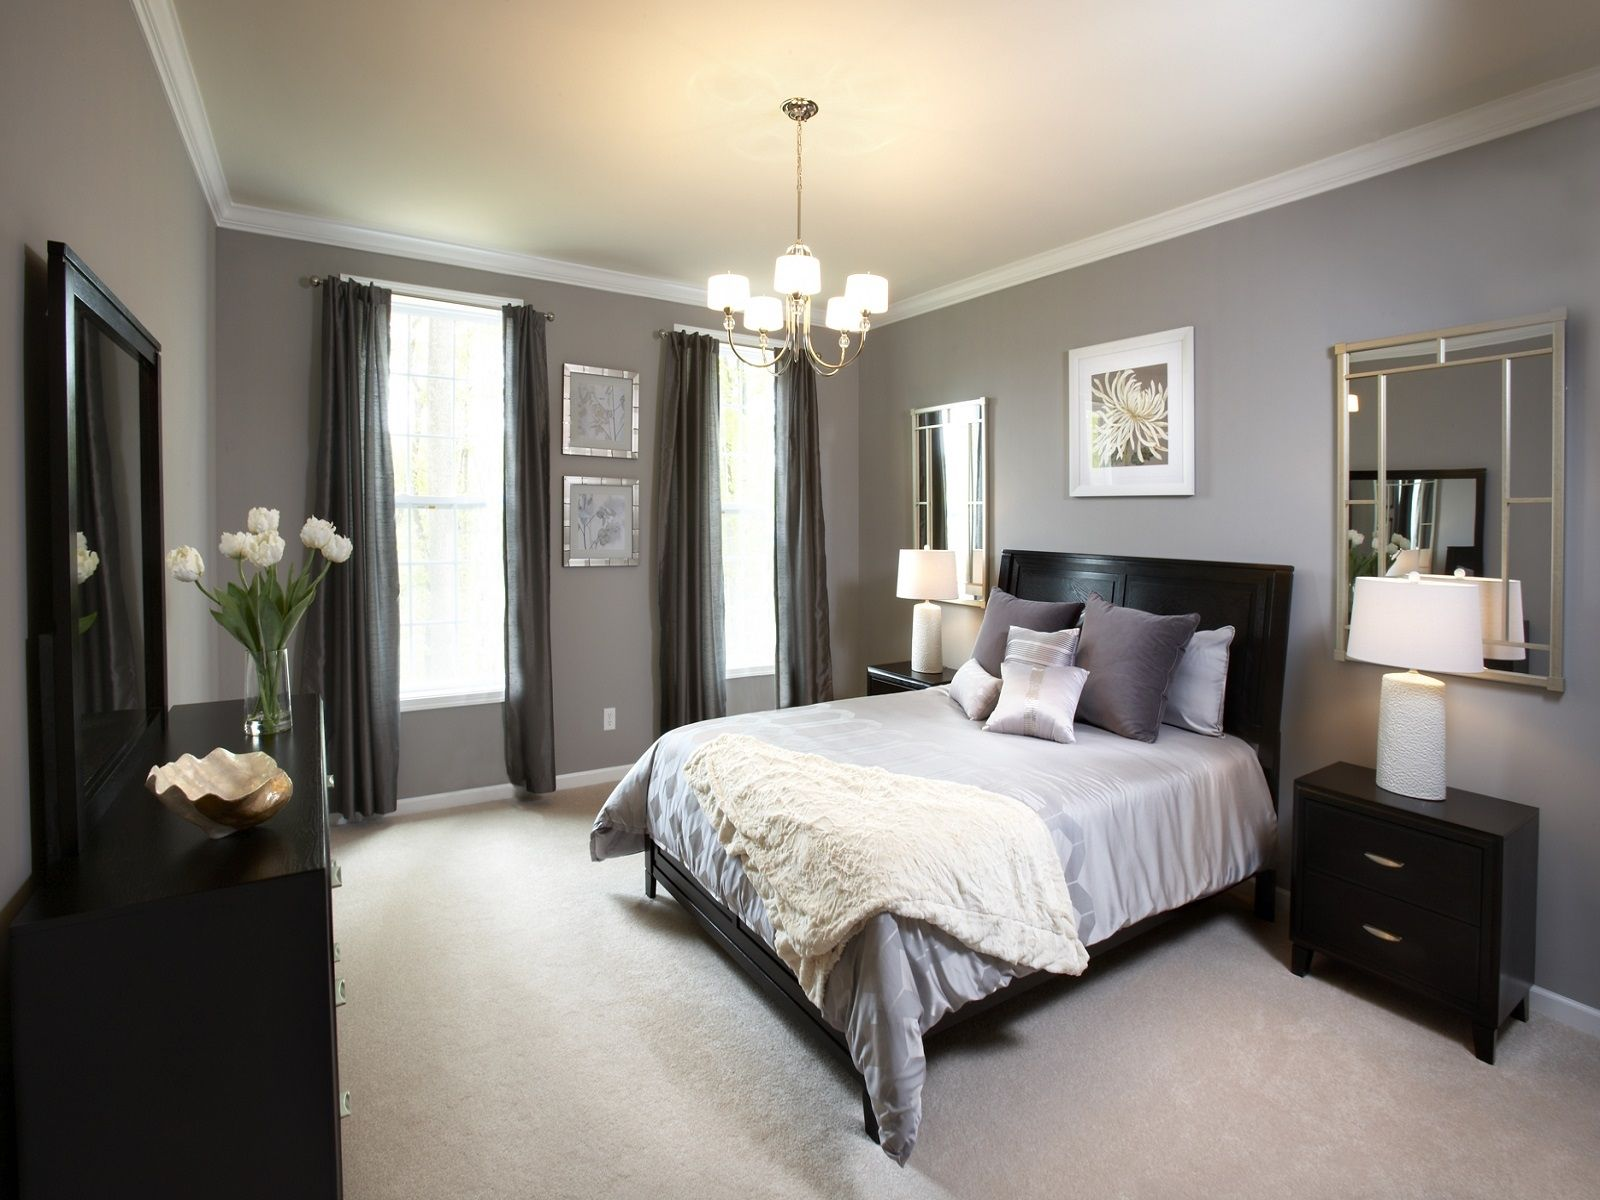 45 beautiful paint color ideas for master bedroom Ideas for decorating my bedroom